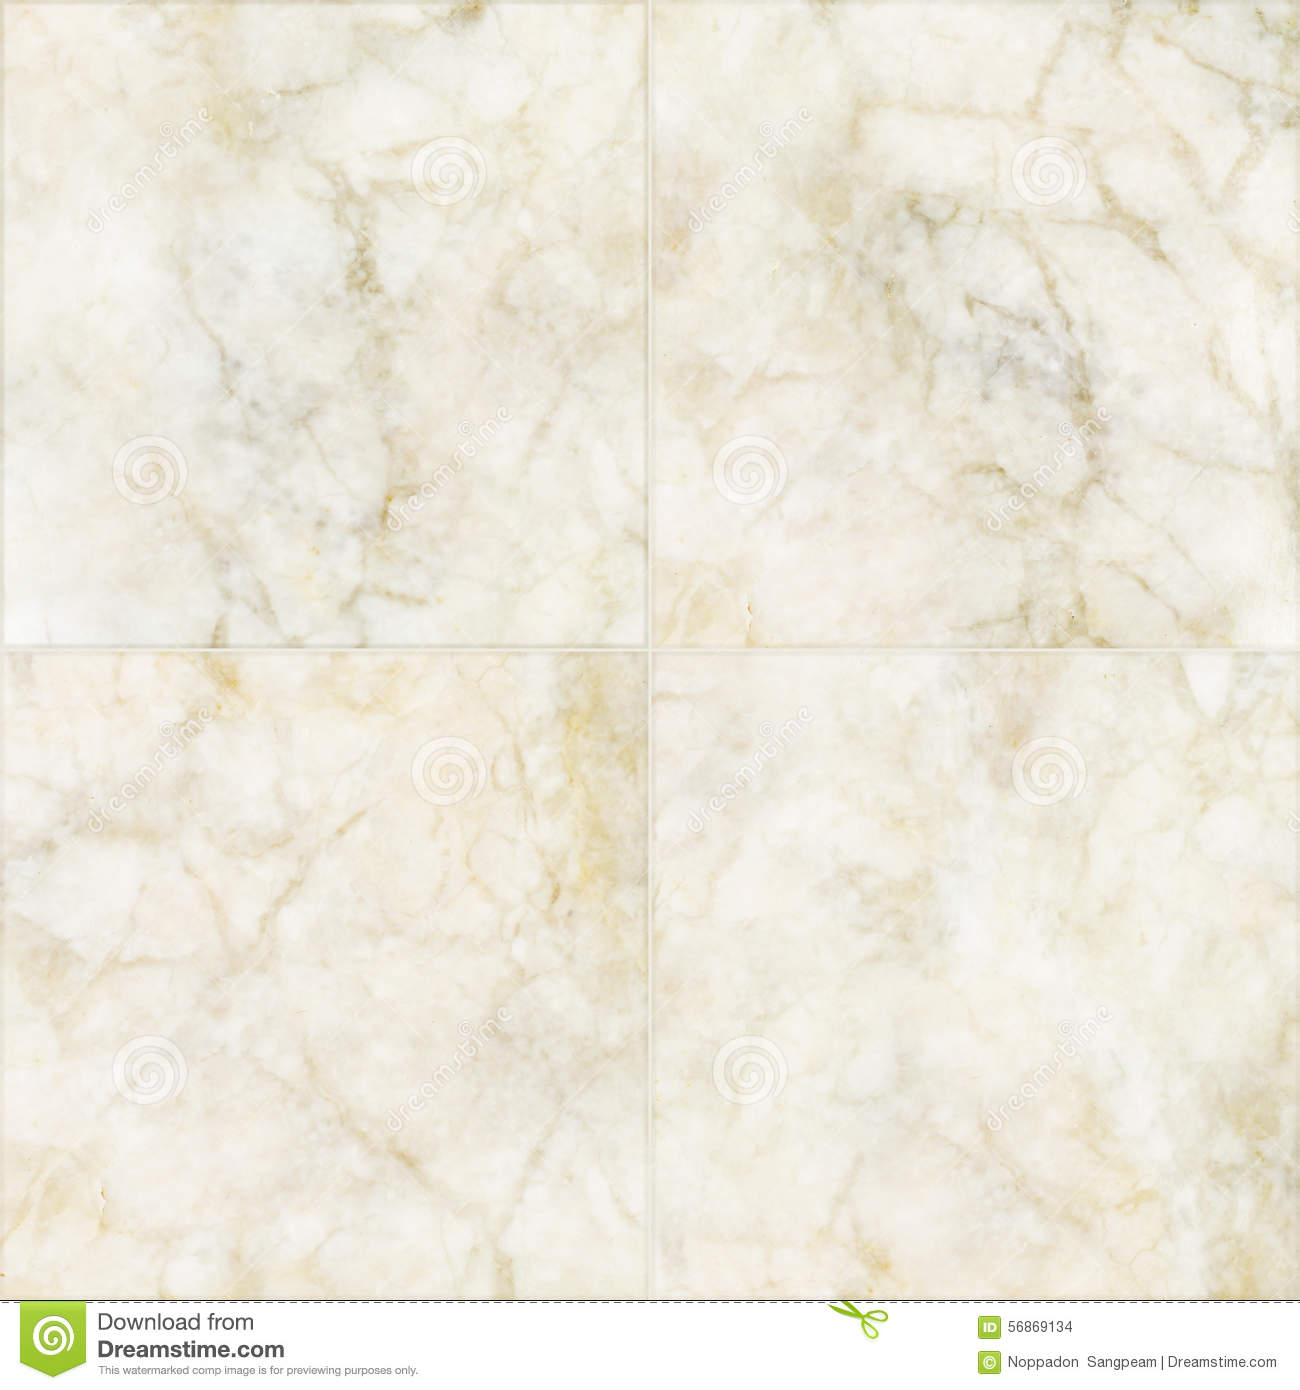 3d Grey Brick Effect Wallpaper Marble Tiles Seamless Flooring Texture For Background And